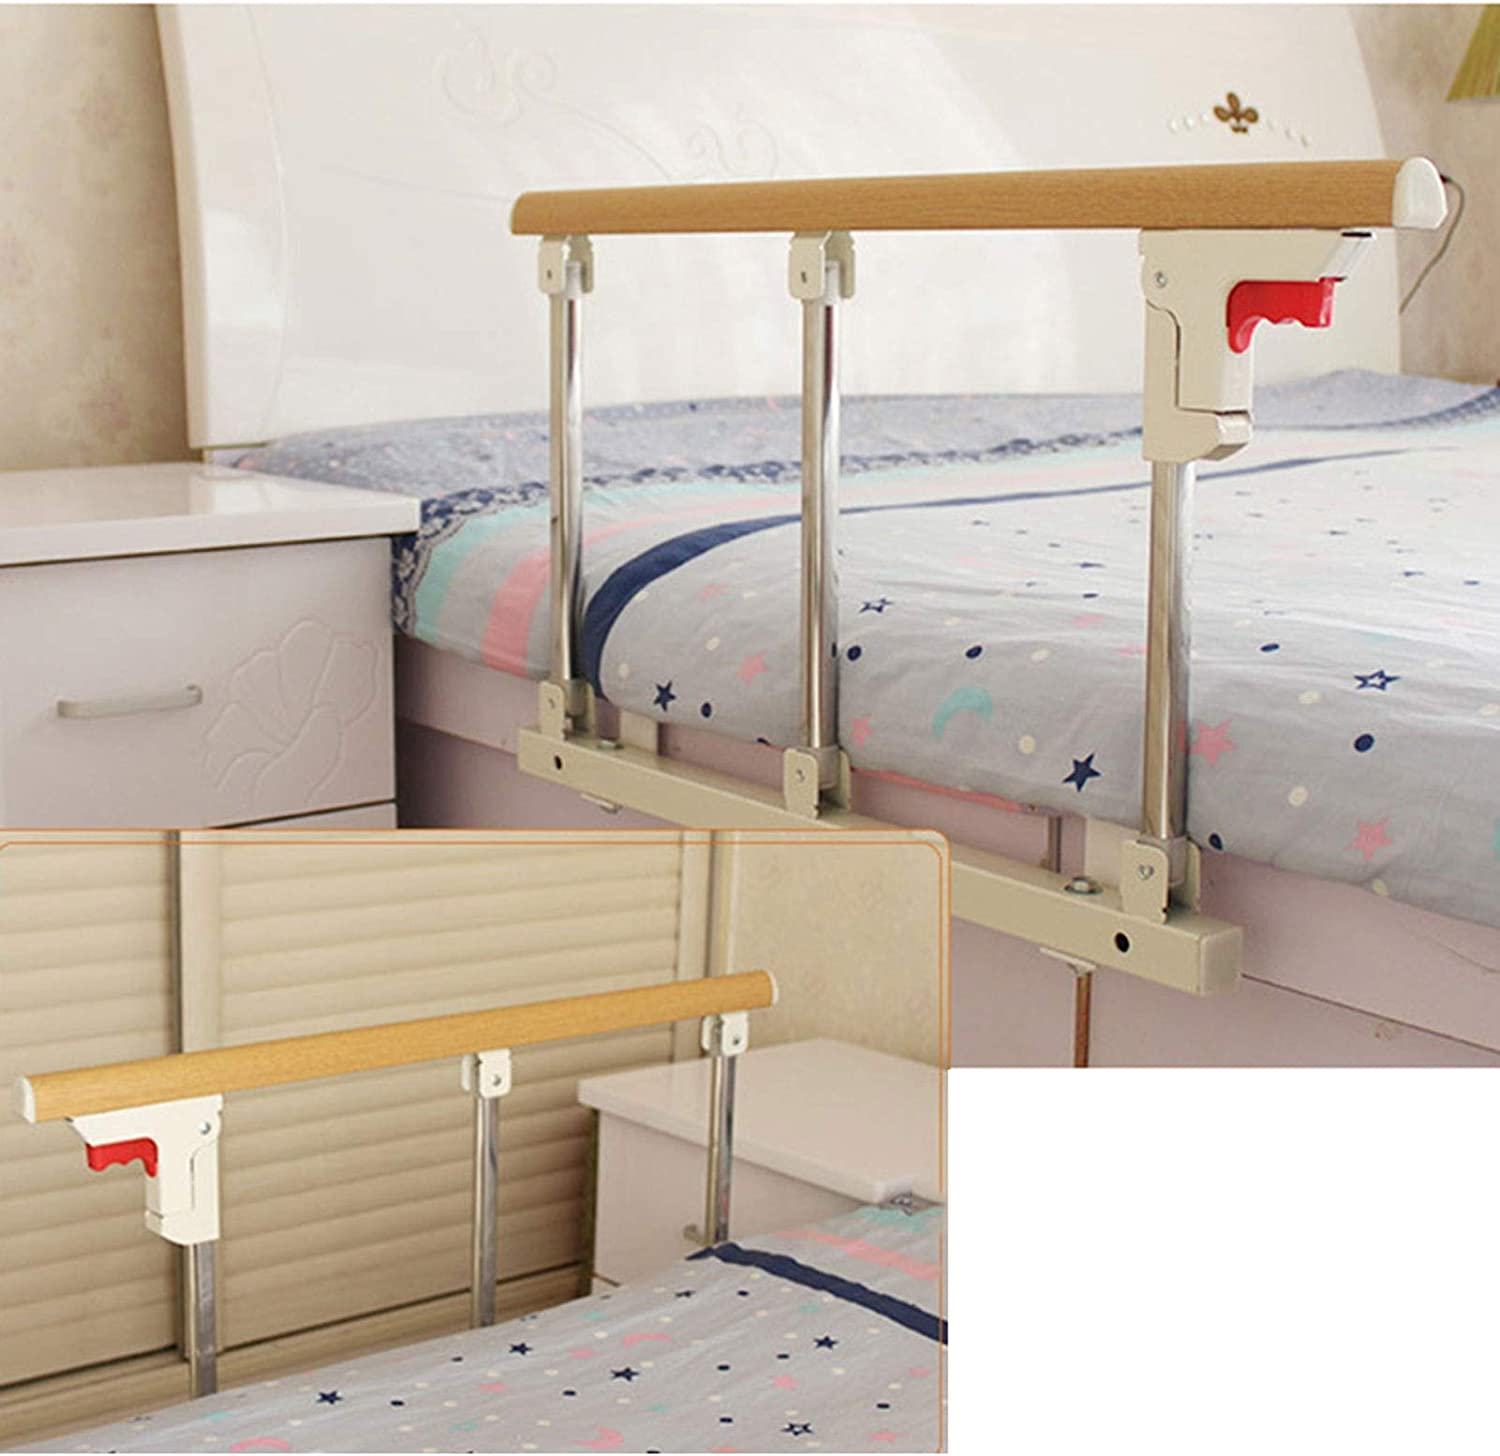 BETTKEN Elderly Bedside Armrest Riser mart and Drop San Diego Mall Auxiliary Safety